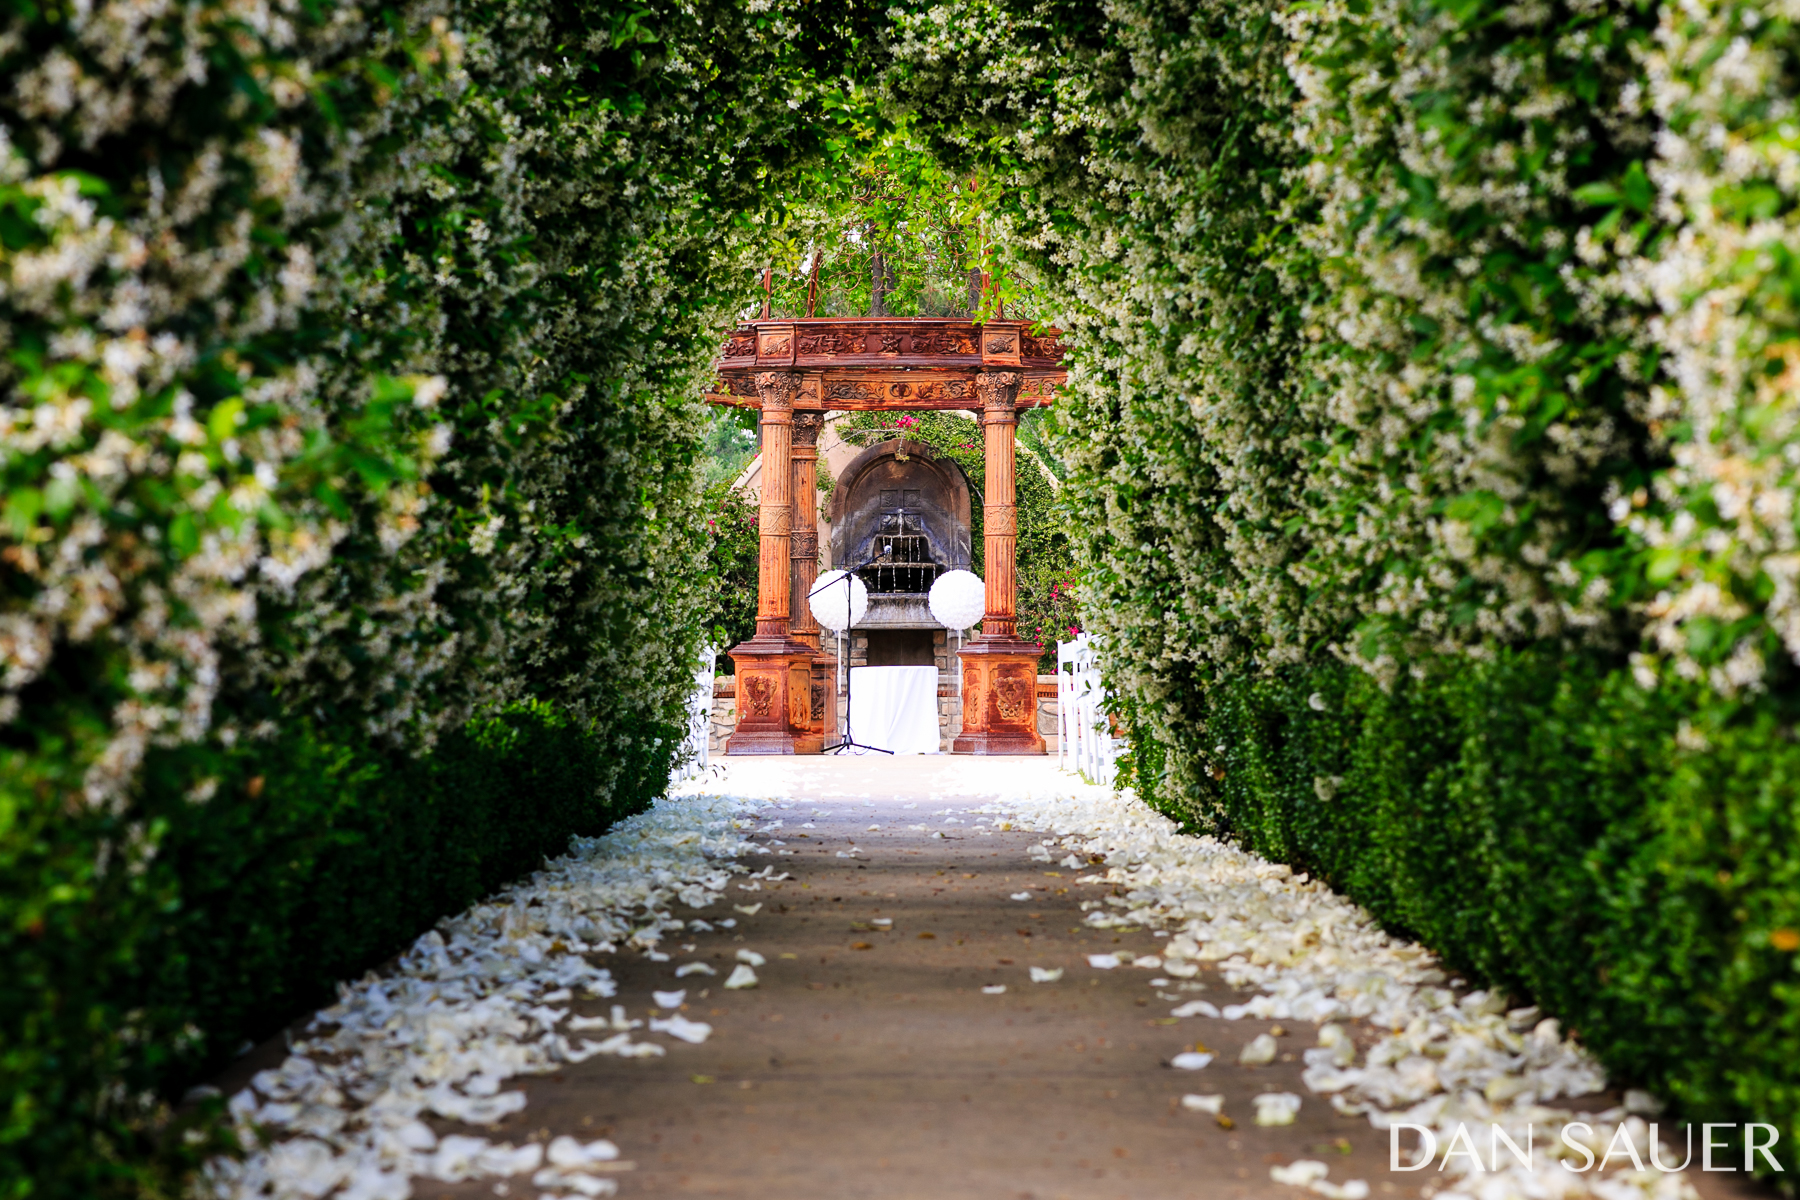 Jennifer And Delten Got Married At The Lavish Westlake Village Inn. Jasmine  Flowers Were In Full Bloom All Around The Tuscan Gardens.